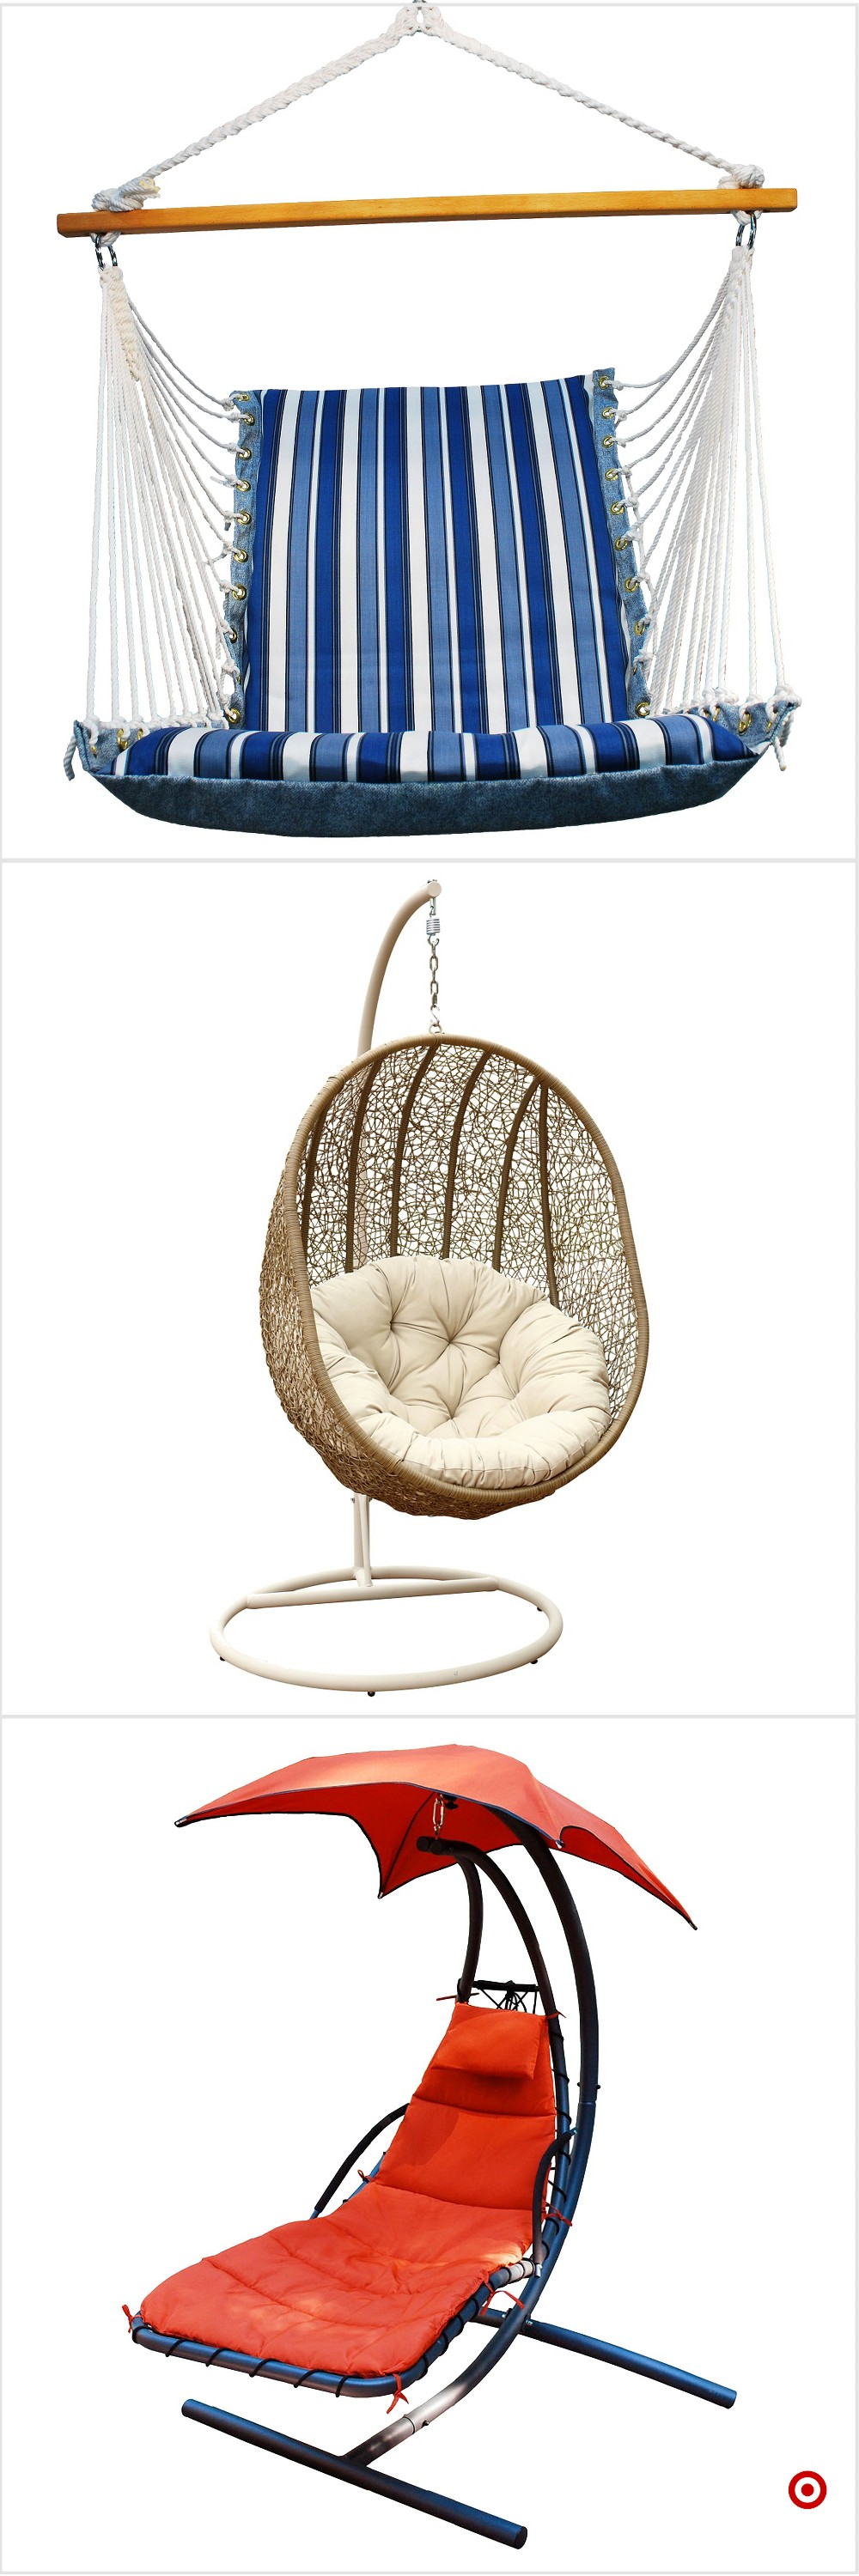 Shop Tar for swinging chair you will love at great low prices